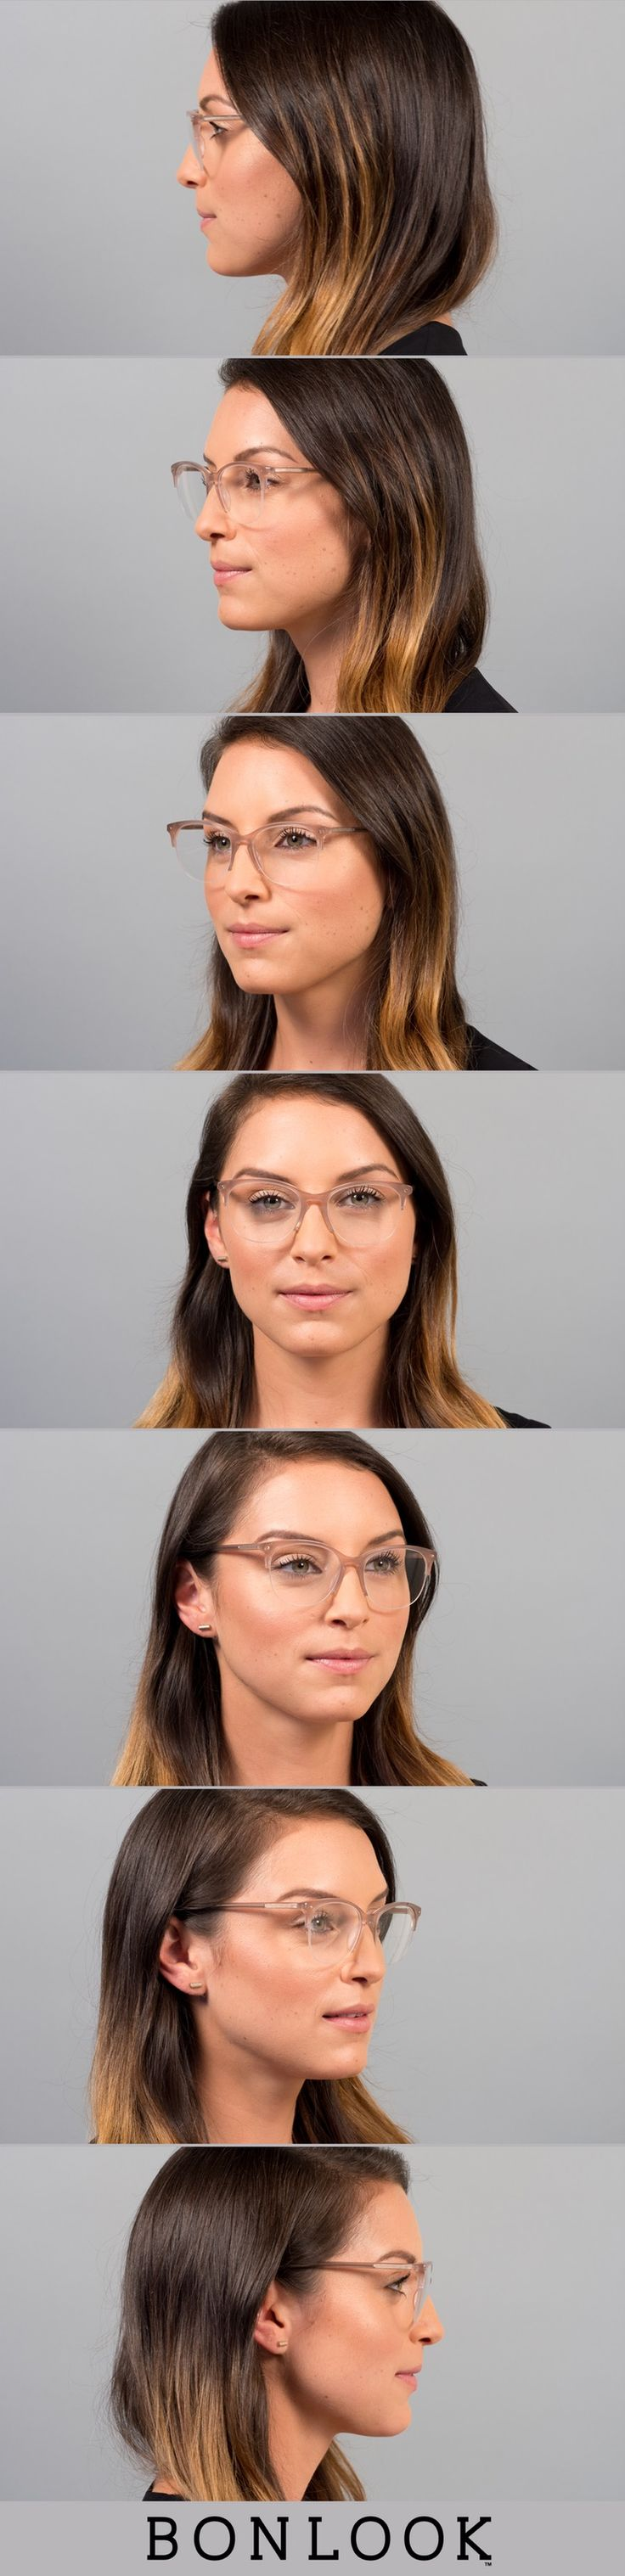 Nadine Light Pink mouse - See the lighter side of life with our new semi-rimless frames, available now for your favourite Nadine glasses. Designed by Maripier Morin, the collection represents the perfect balance between style and trends. Named in honor of Maripier's young nieces, it's a feminine collection with frames that make a statement. You won't go unnoticed when you wear them. *Semi-rimless frames can only be fitted to prescriptions with a sphere (SPH) value between -6.00